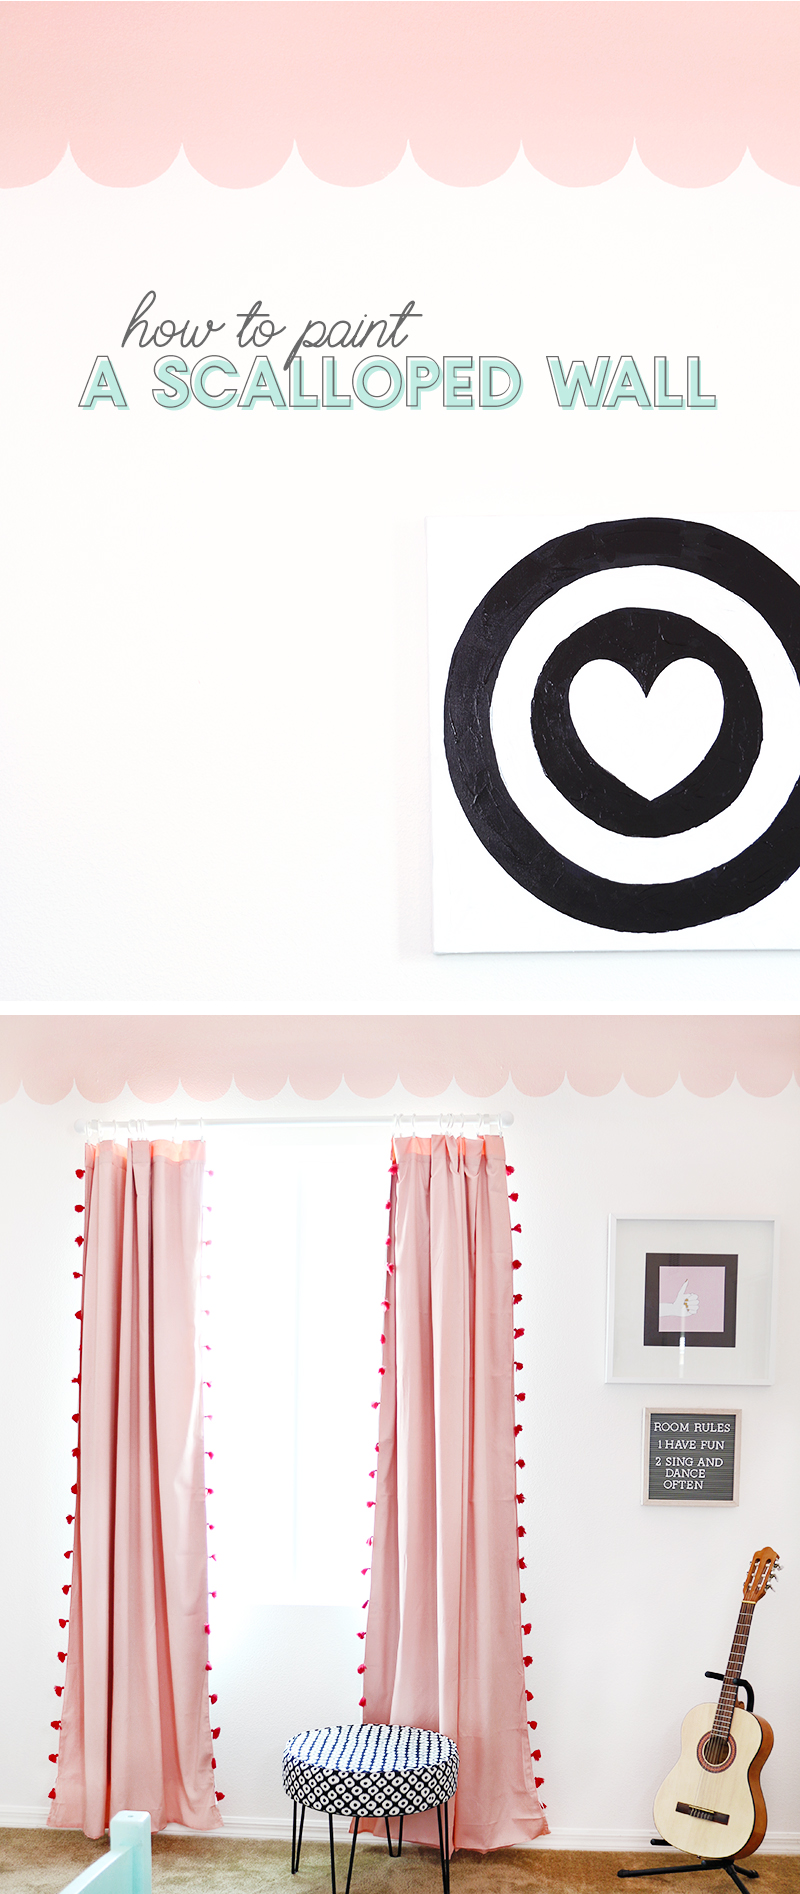 how to paint a scalloped wall treatment - adorable girls room with scalloped wall